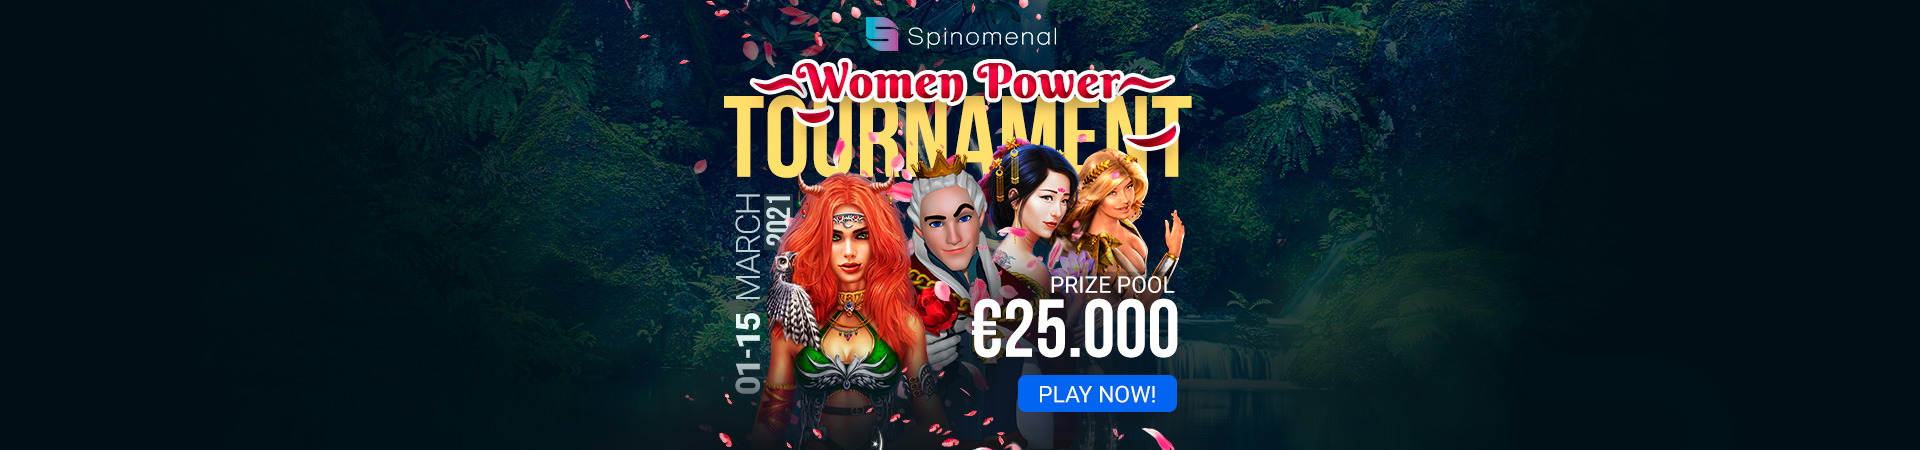 2021 02 King Billy English Spinomenal Tournament Women Power 1920x450